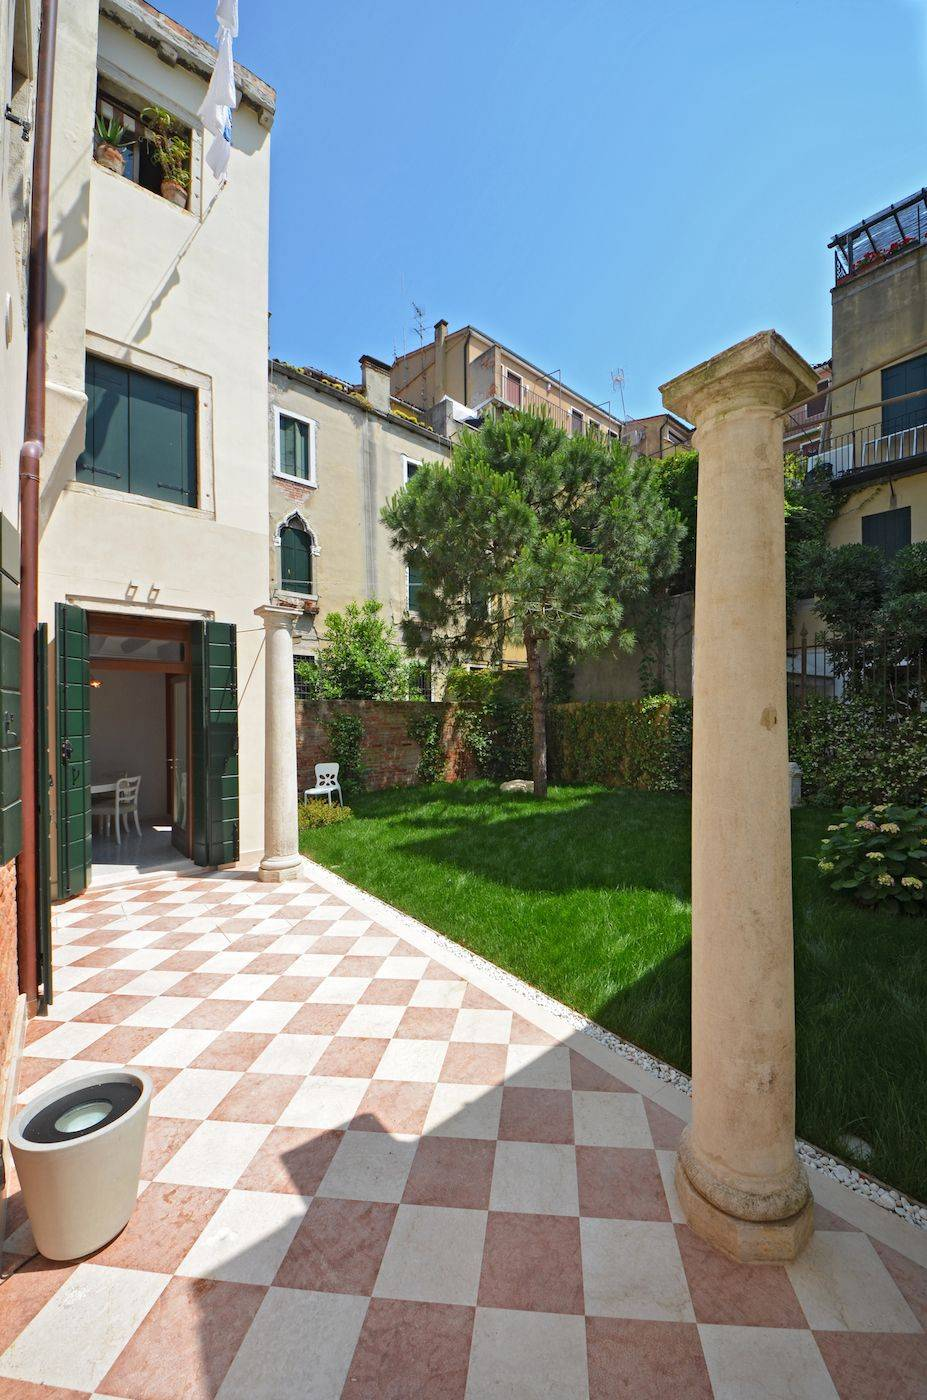 access to the Palladio Garden apartment from the shared garden